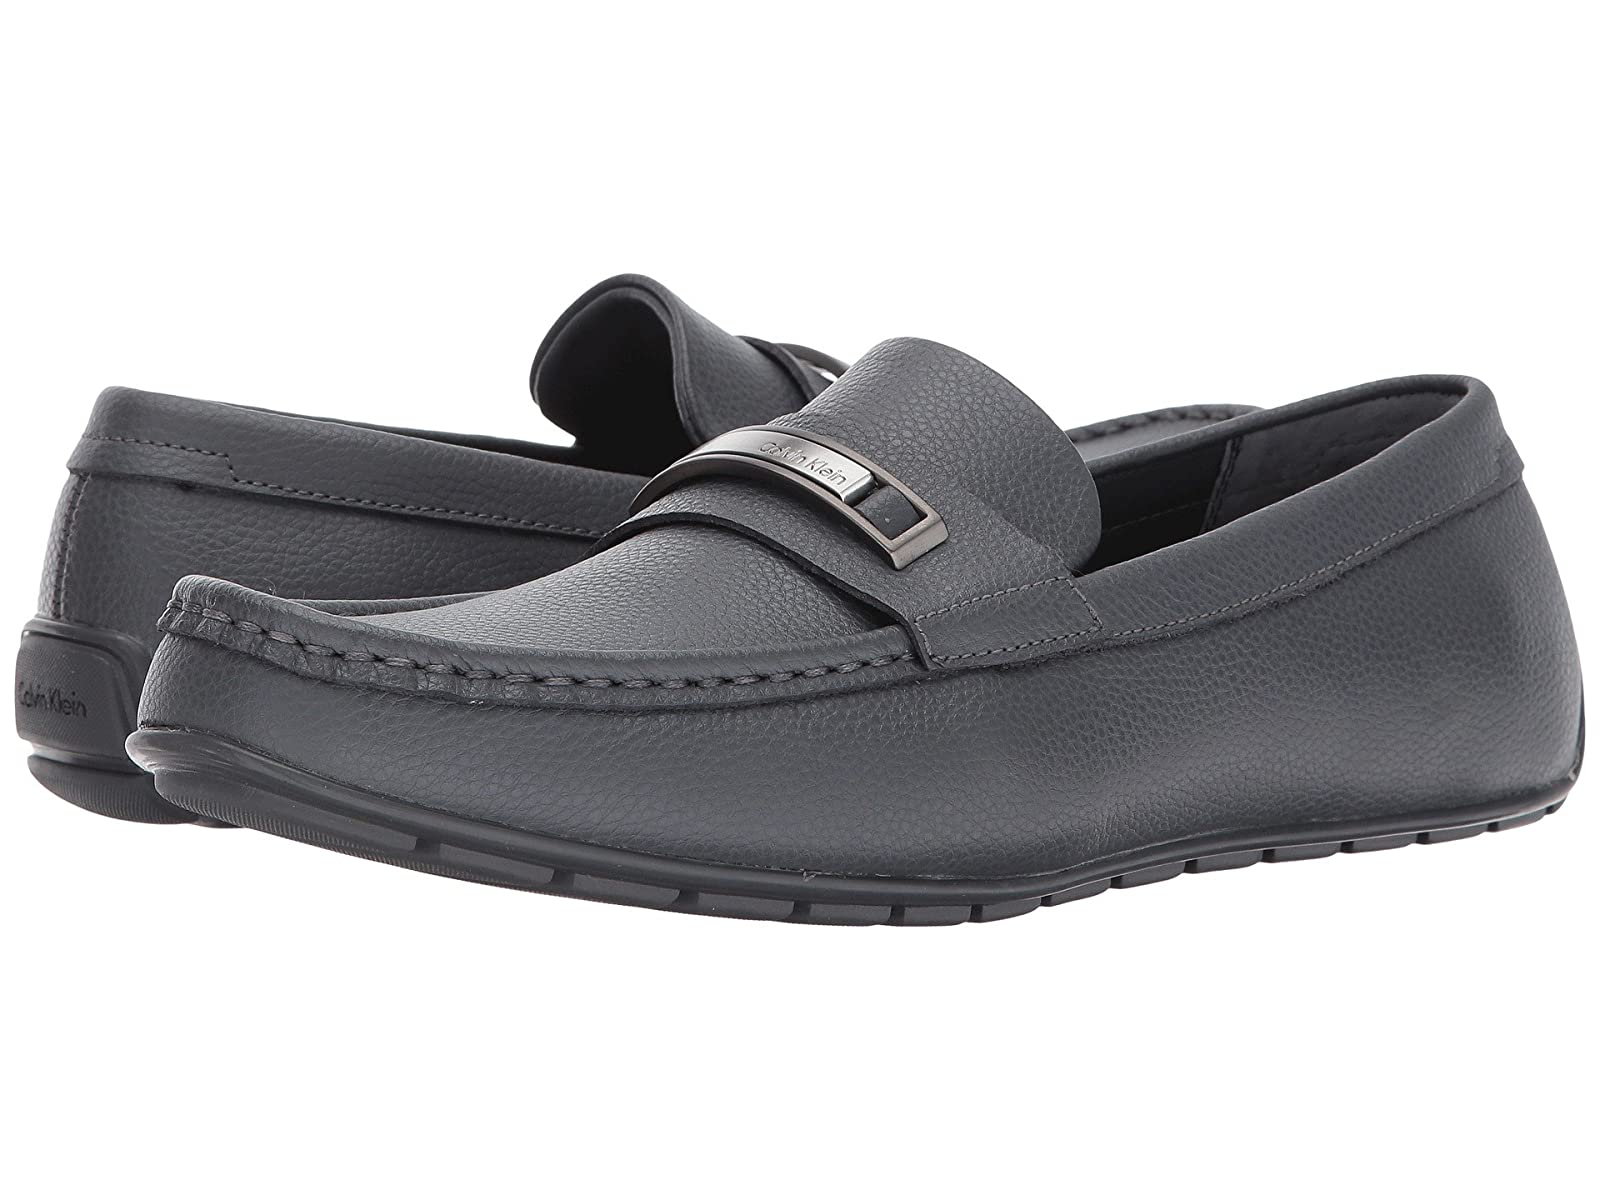 Calvin Klein IrvingCheap and distinctive eye-catching shoes